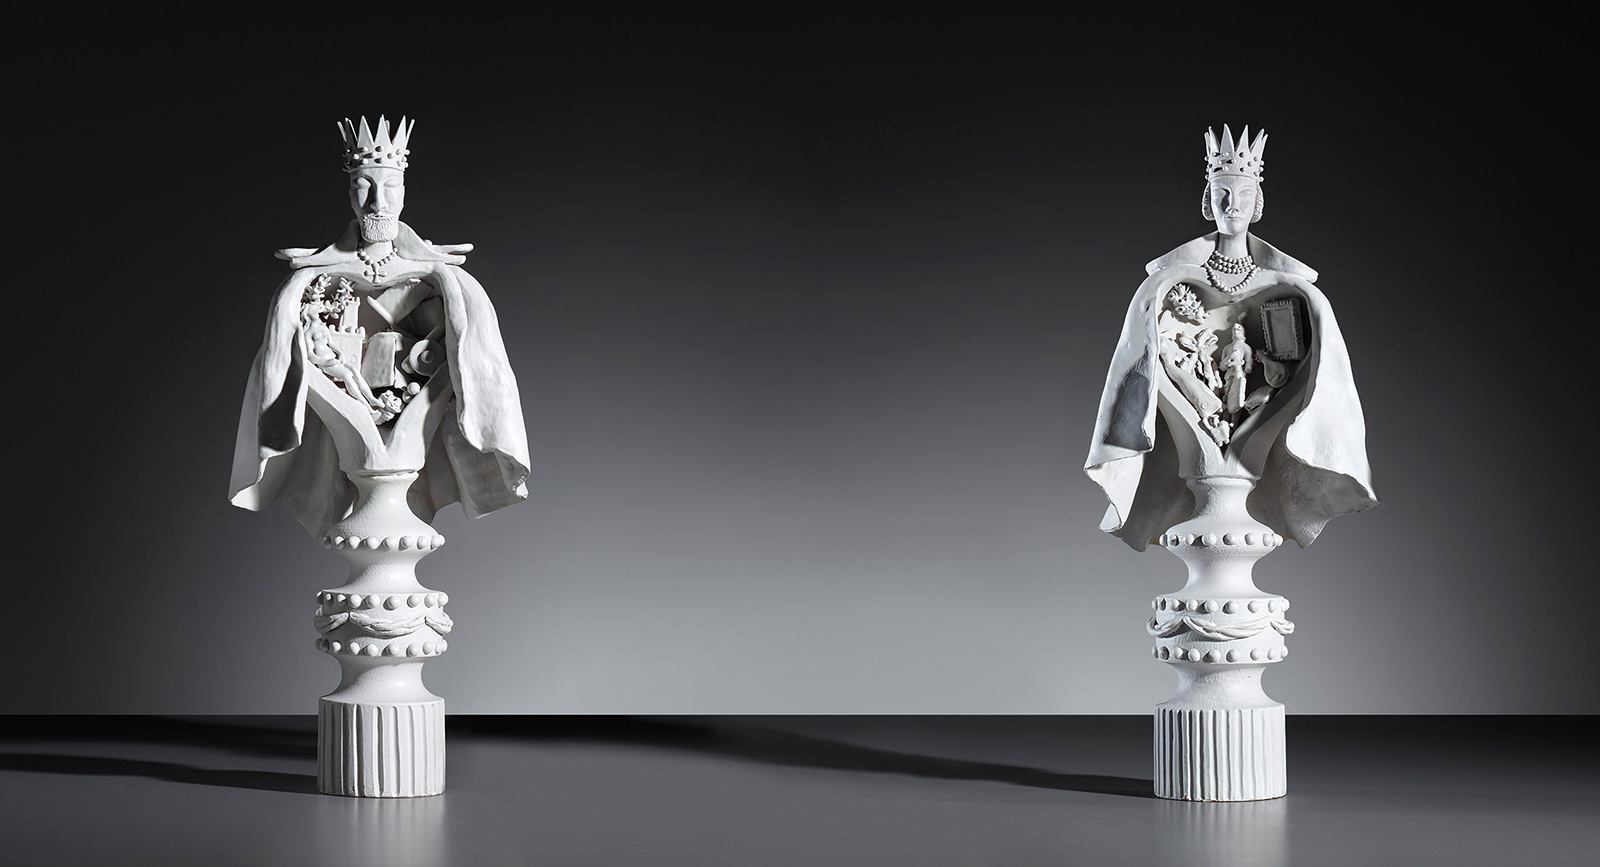 Lot 309: Large king and queen statuettes by Gio Ponti, circa 1951 Estimate: £15,000 - 20,000. Courtesy of Phillips